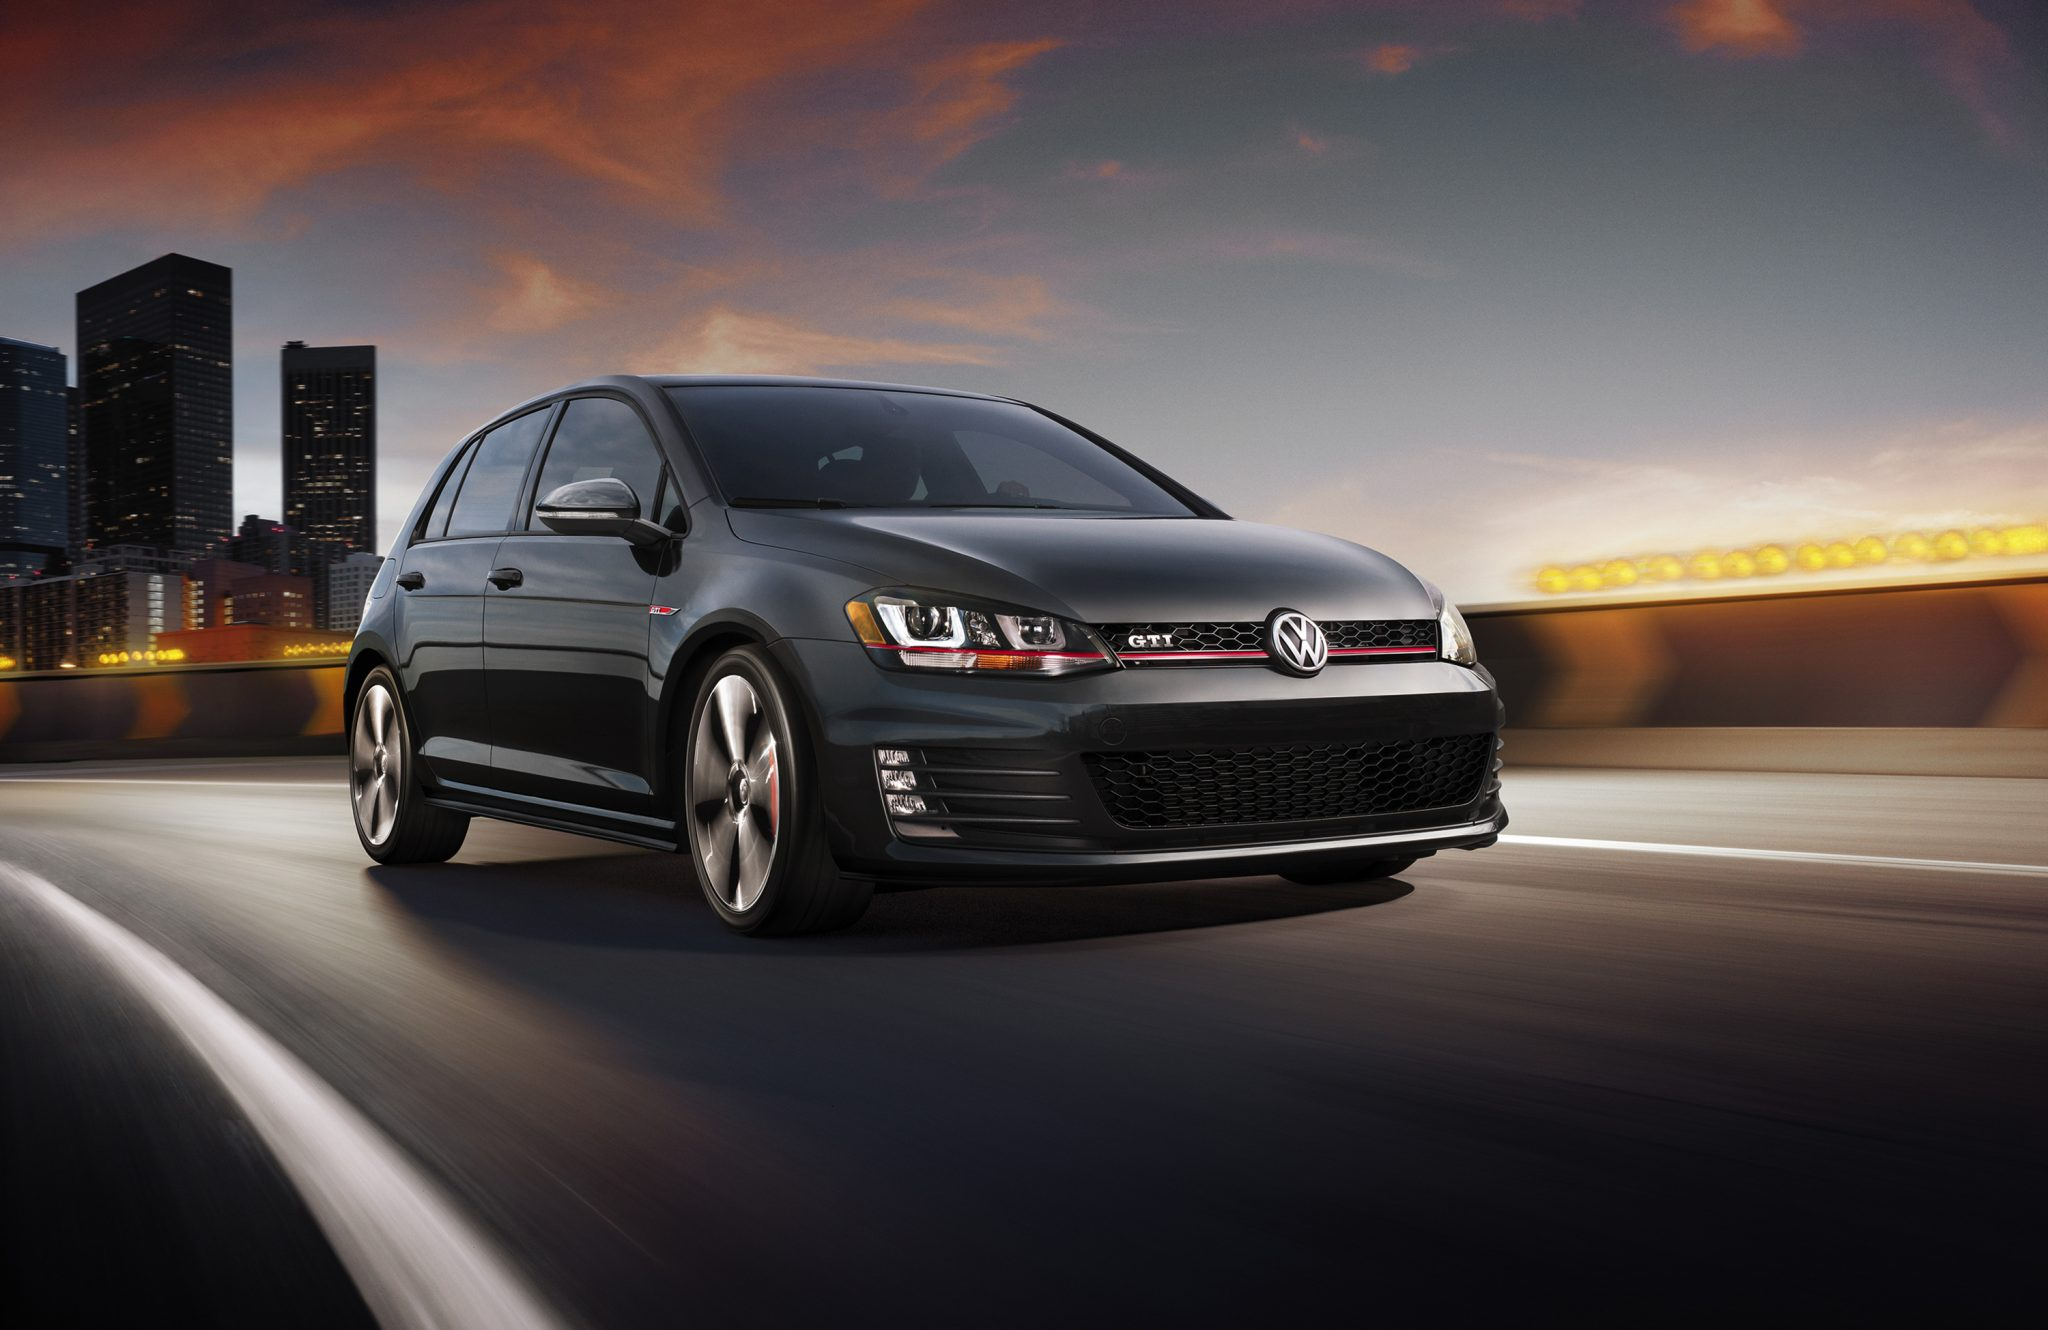 2015 Yahoo Autos Car of the Year Award Goes to Volkswagen Golf GTI